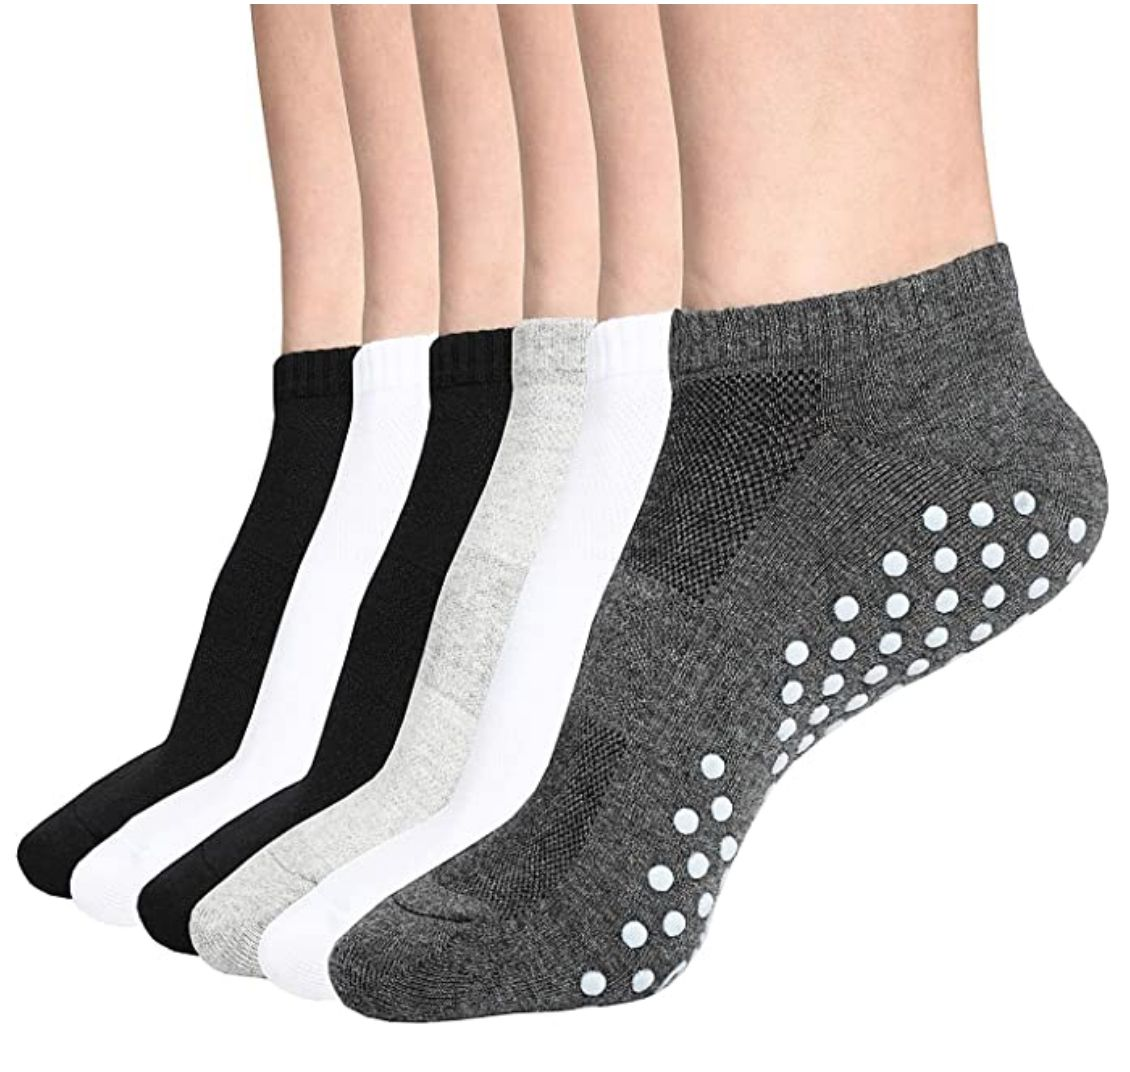 DIBAOLONG Ankle No Show Athletic Short Cotton Socks